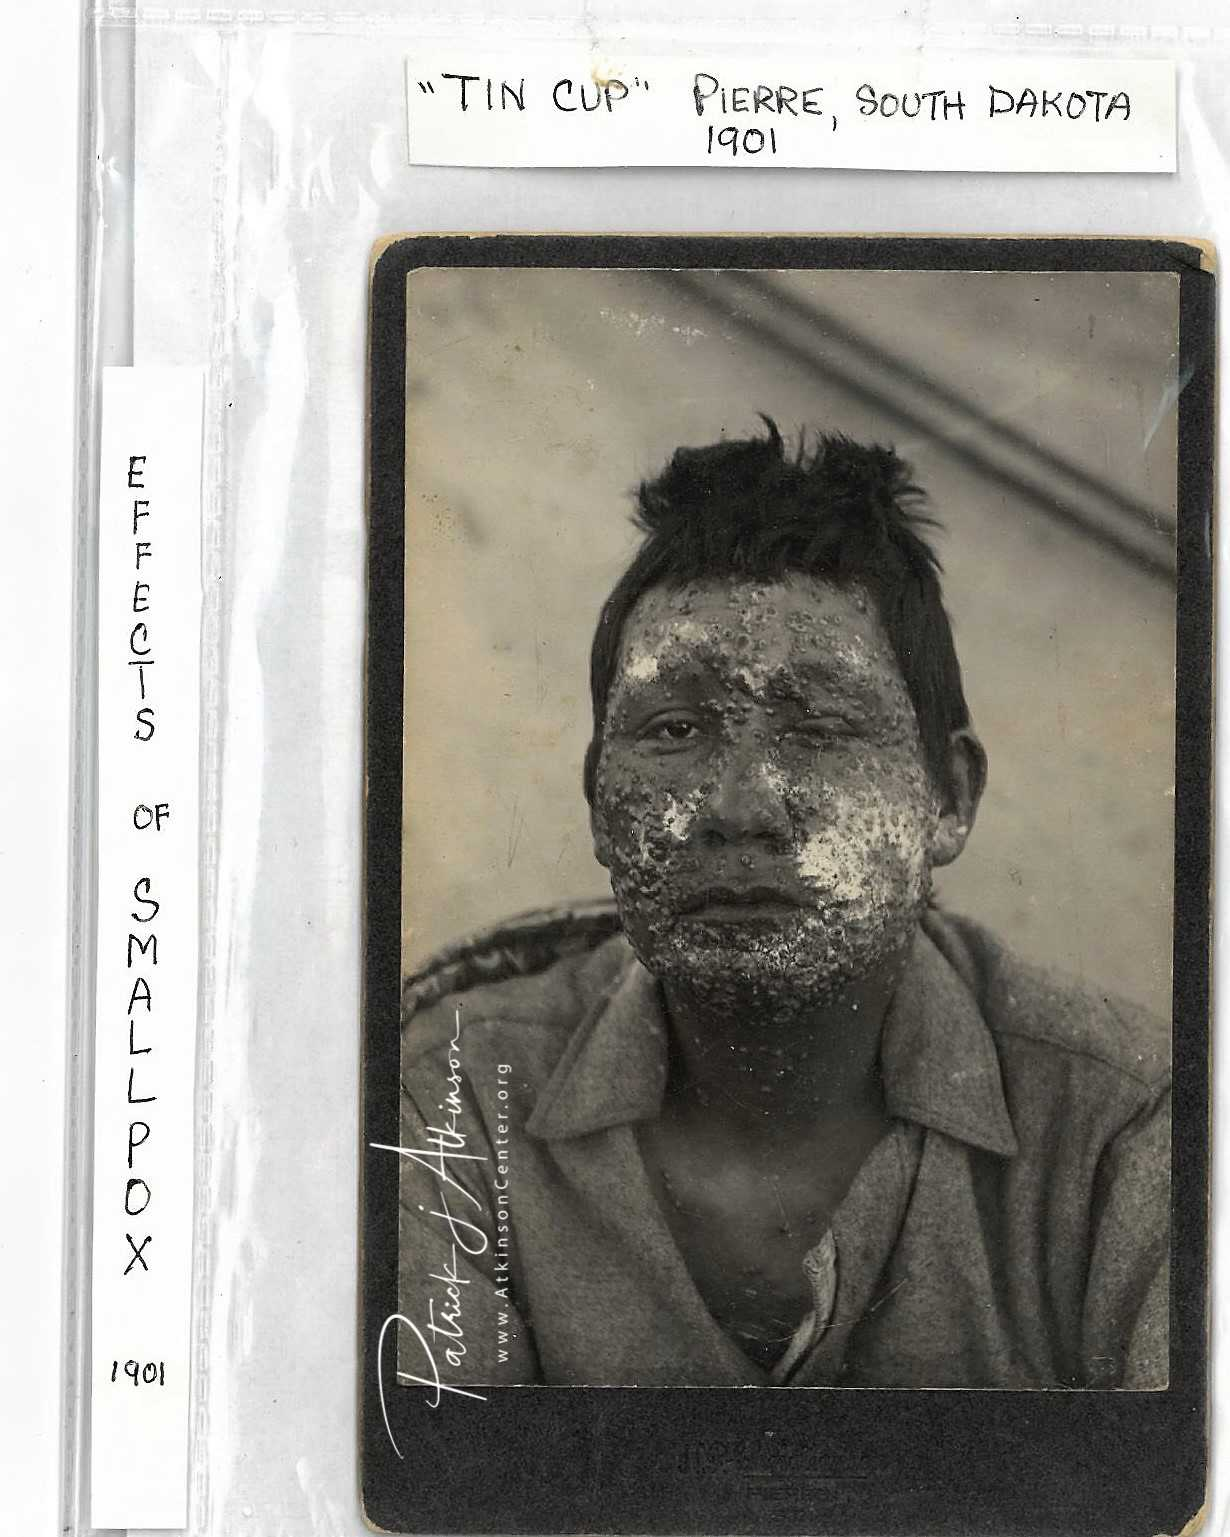 Sioux Indian with smallpox 1901 - photo - The Atkinson Center